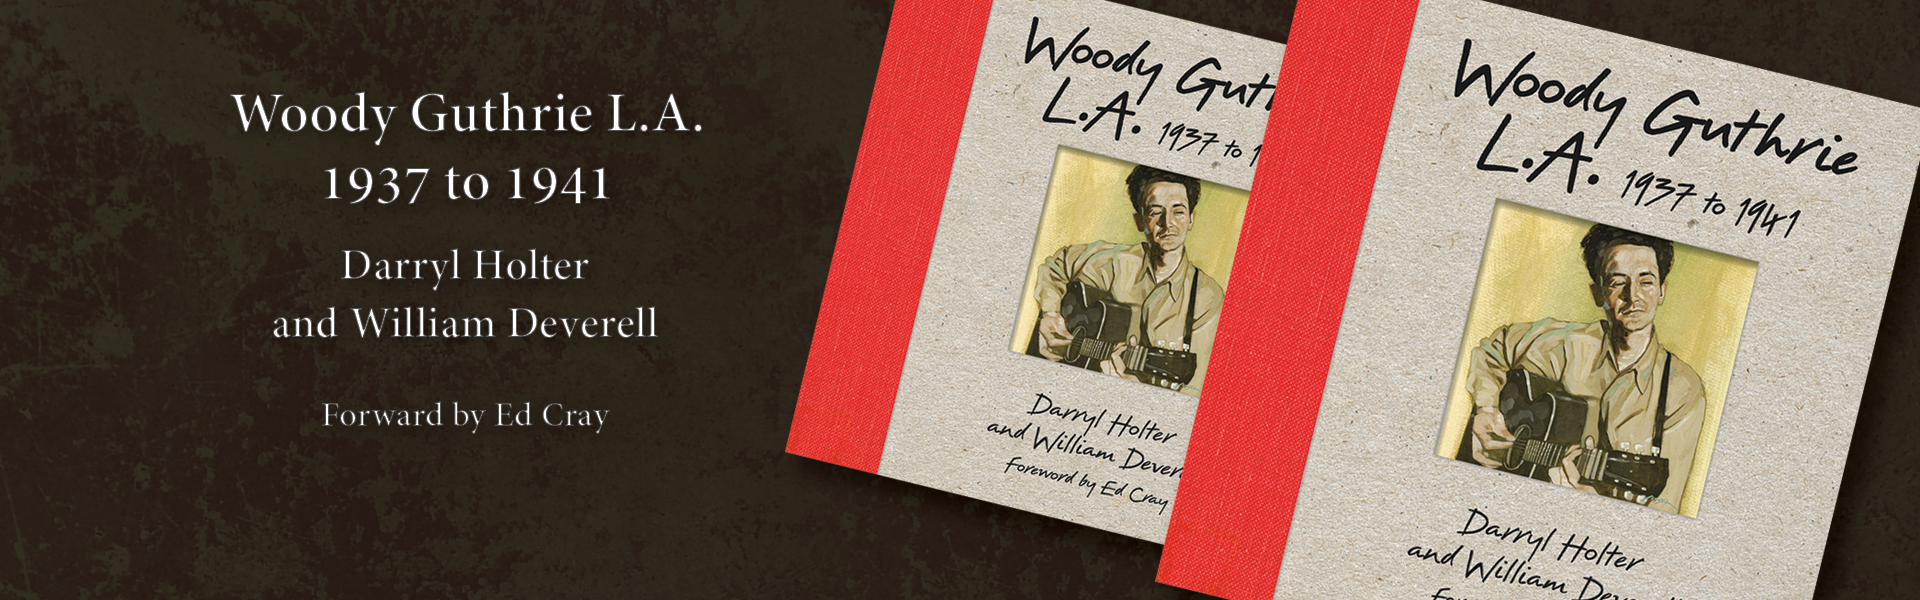 Woody Guthrie L.A.: 1937 to 1941